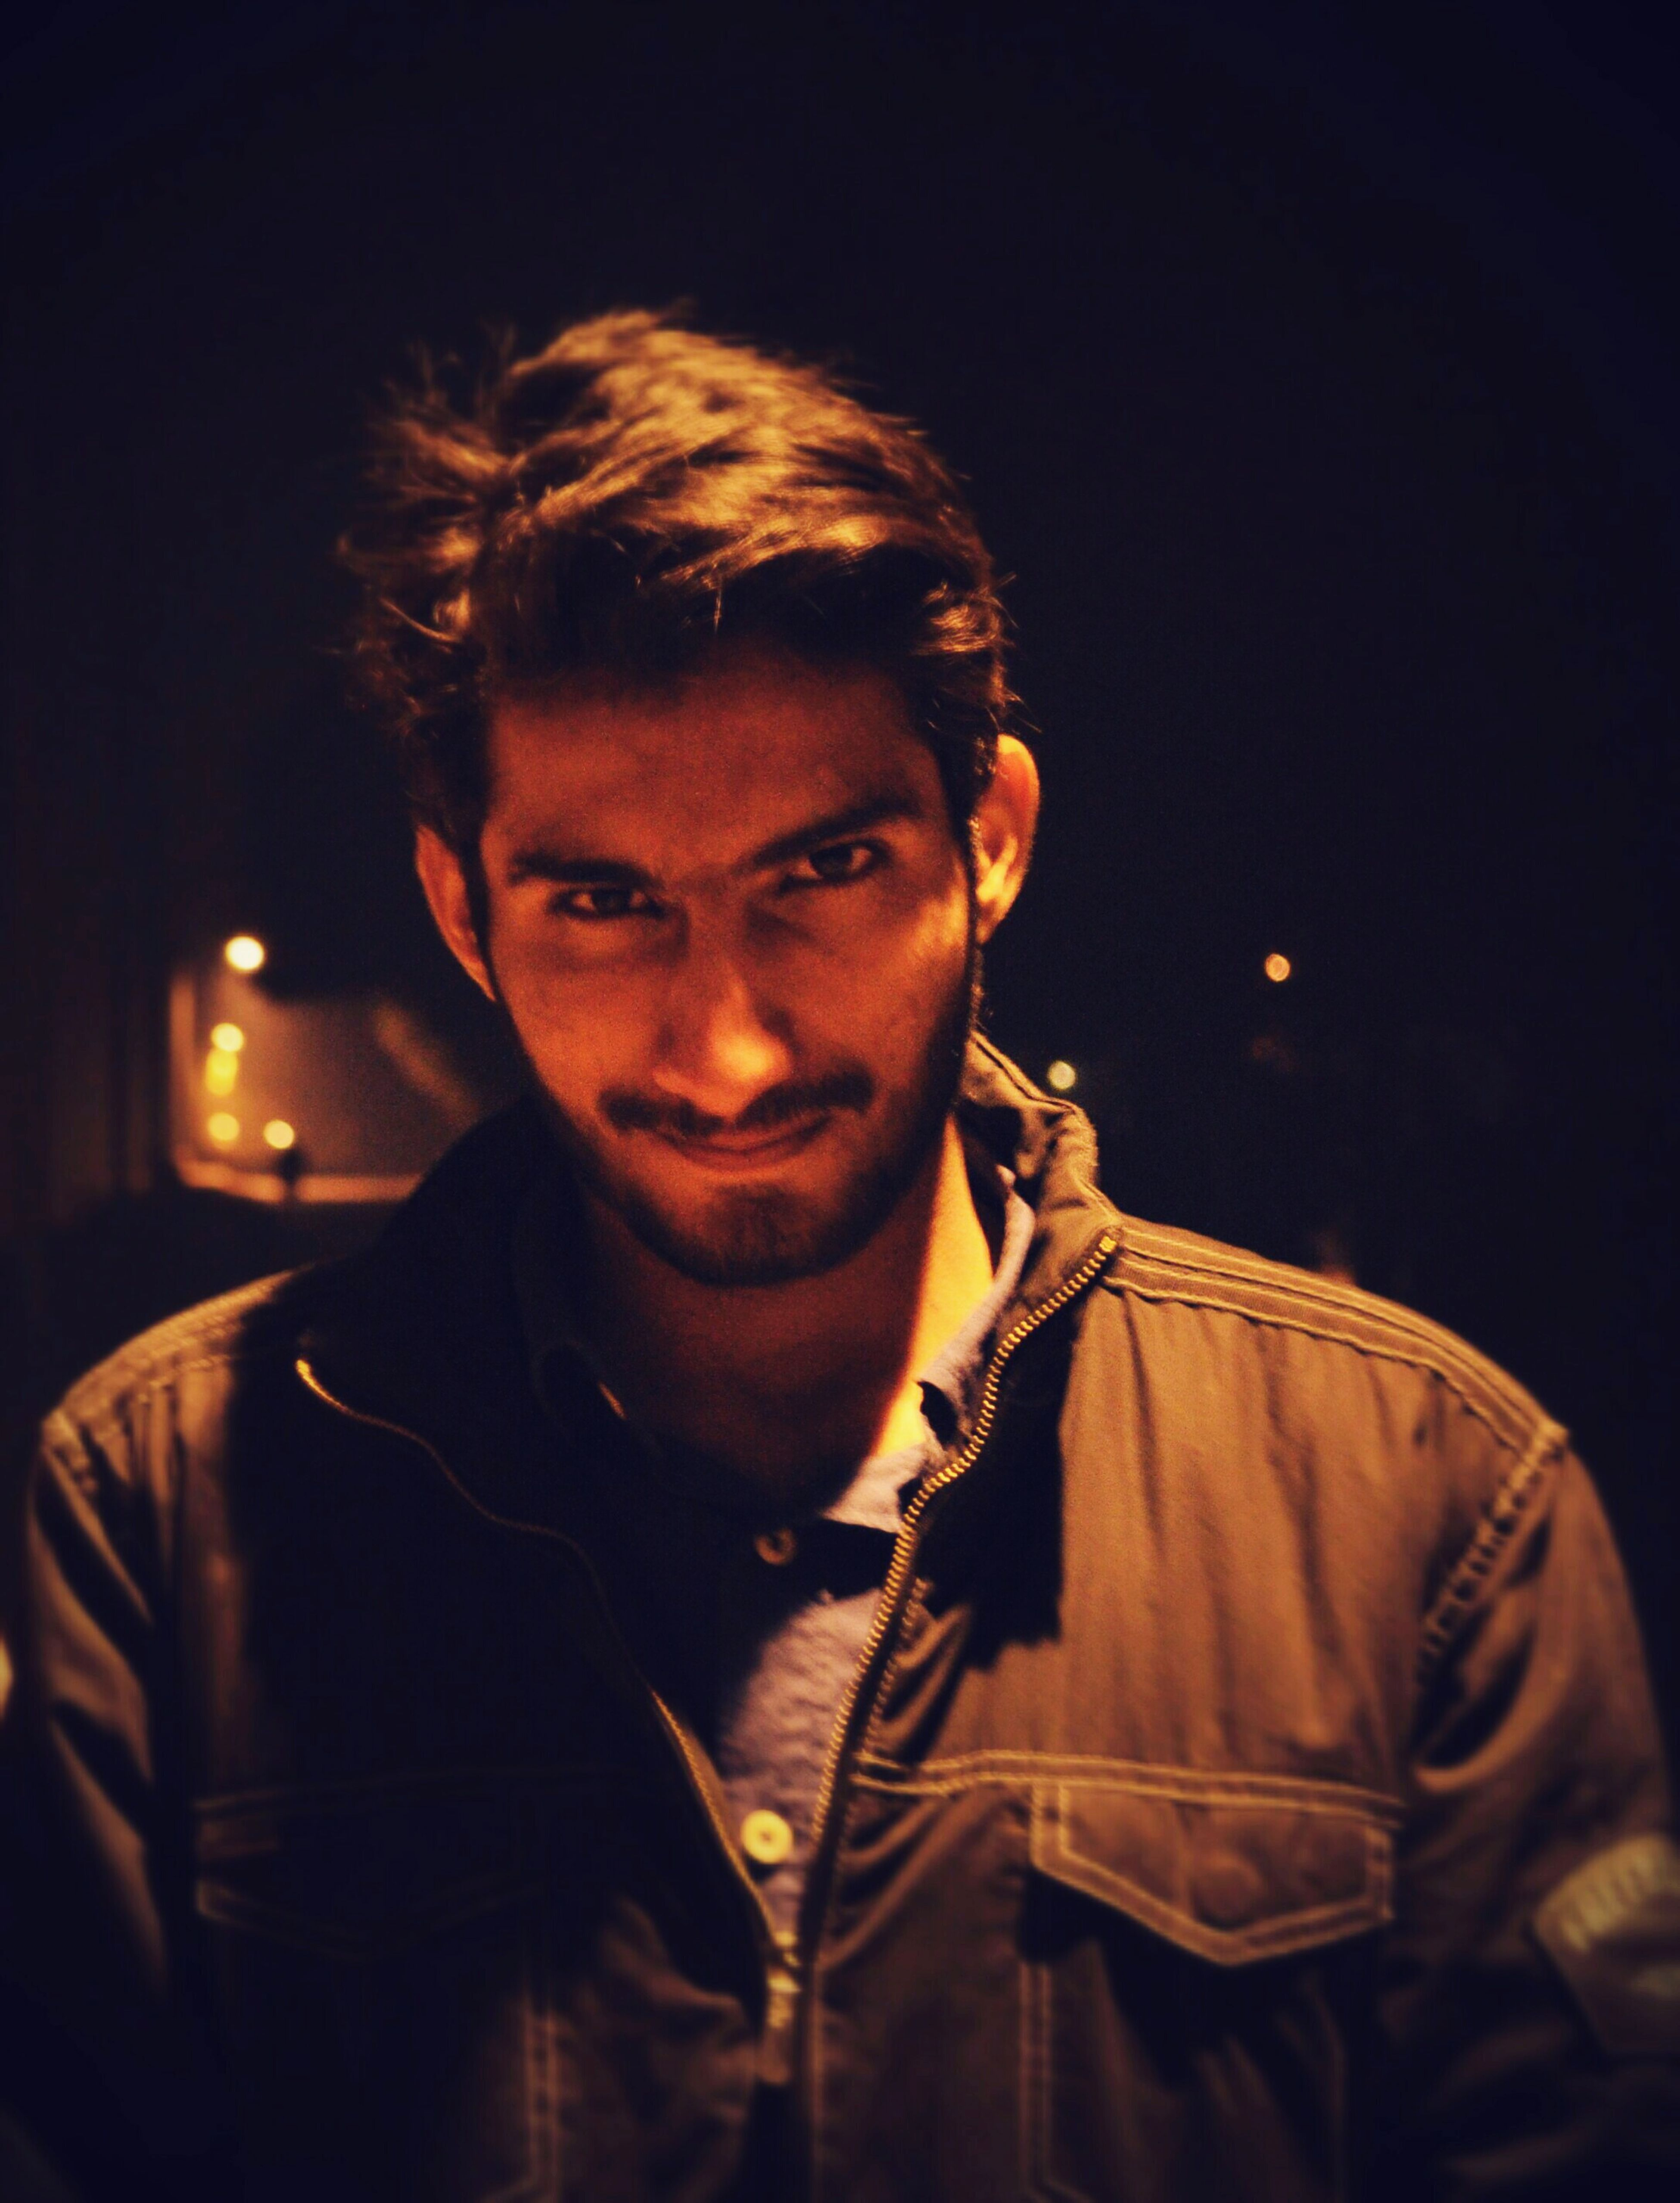 Evening :-) Dark Pose Trying To Scare :P